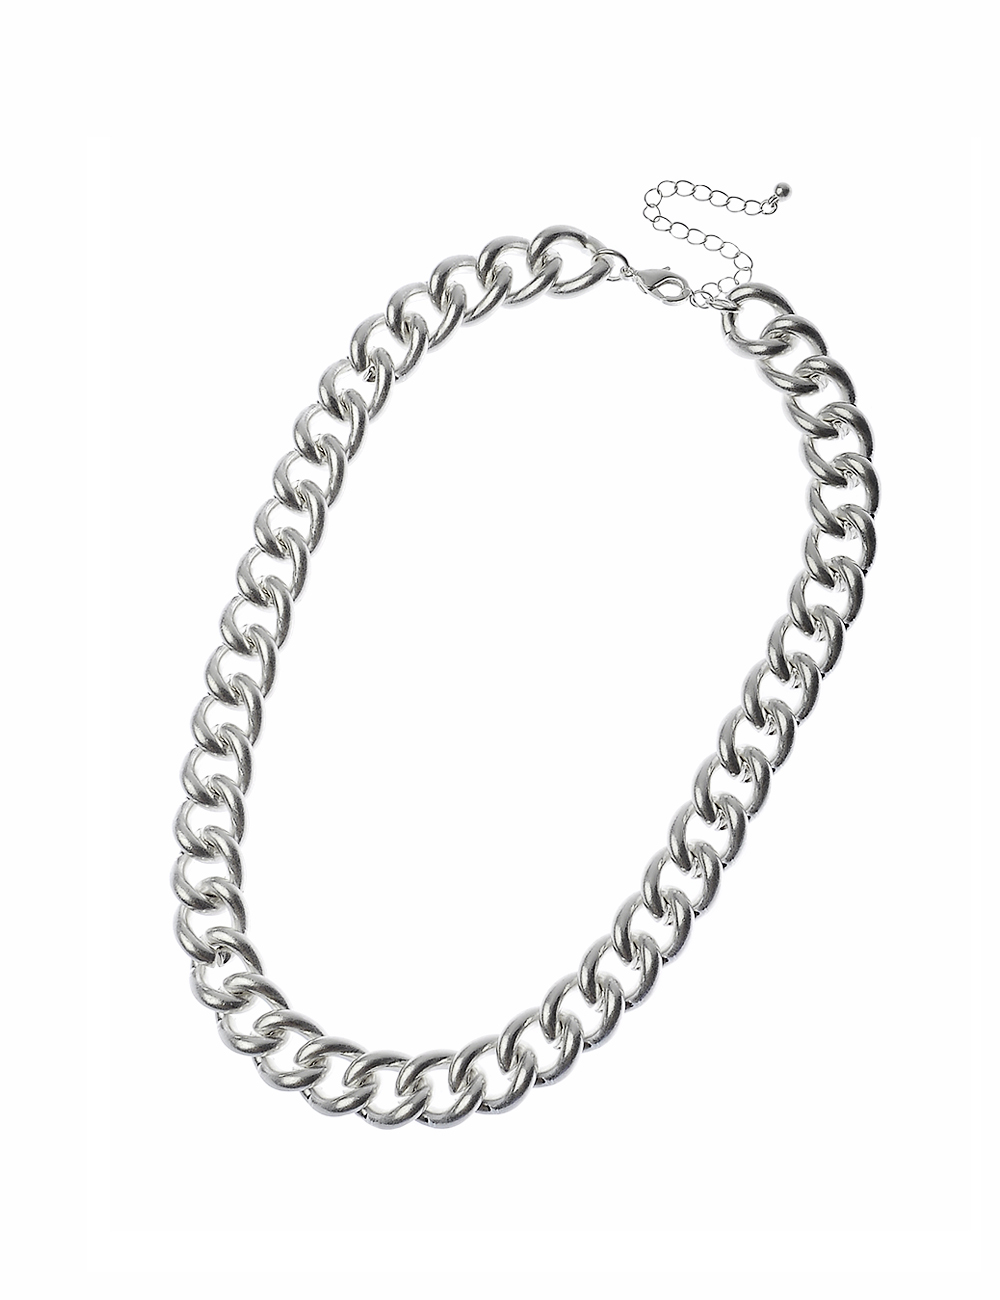 Worn Silver Curb Chain Necklace